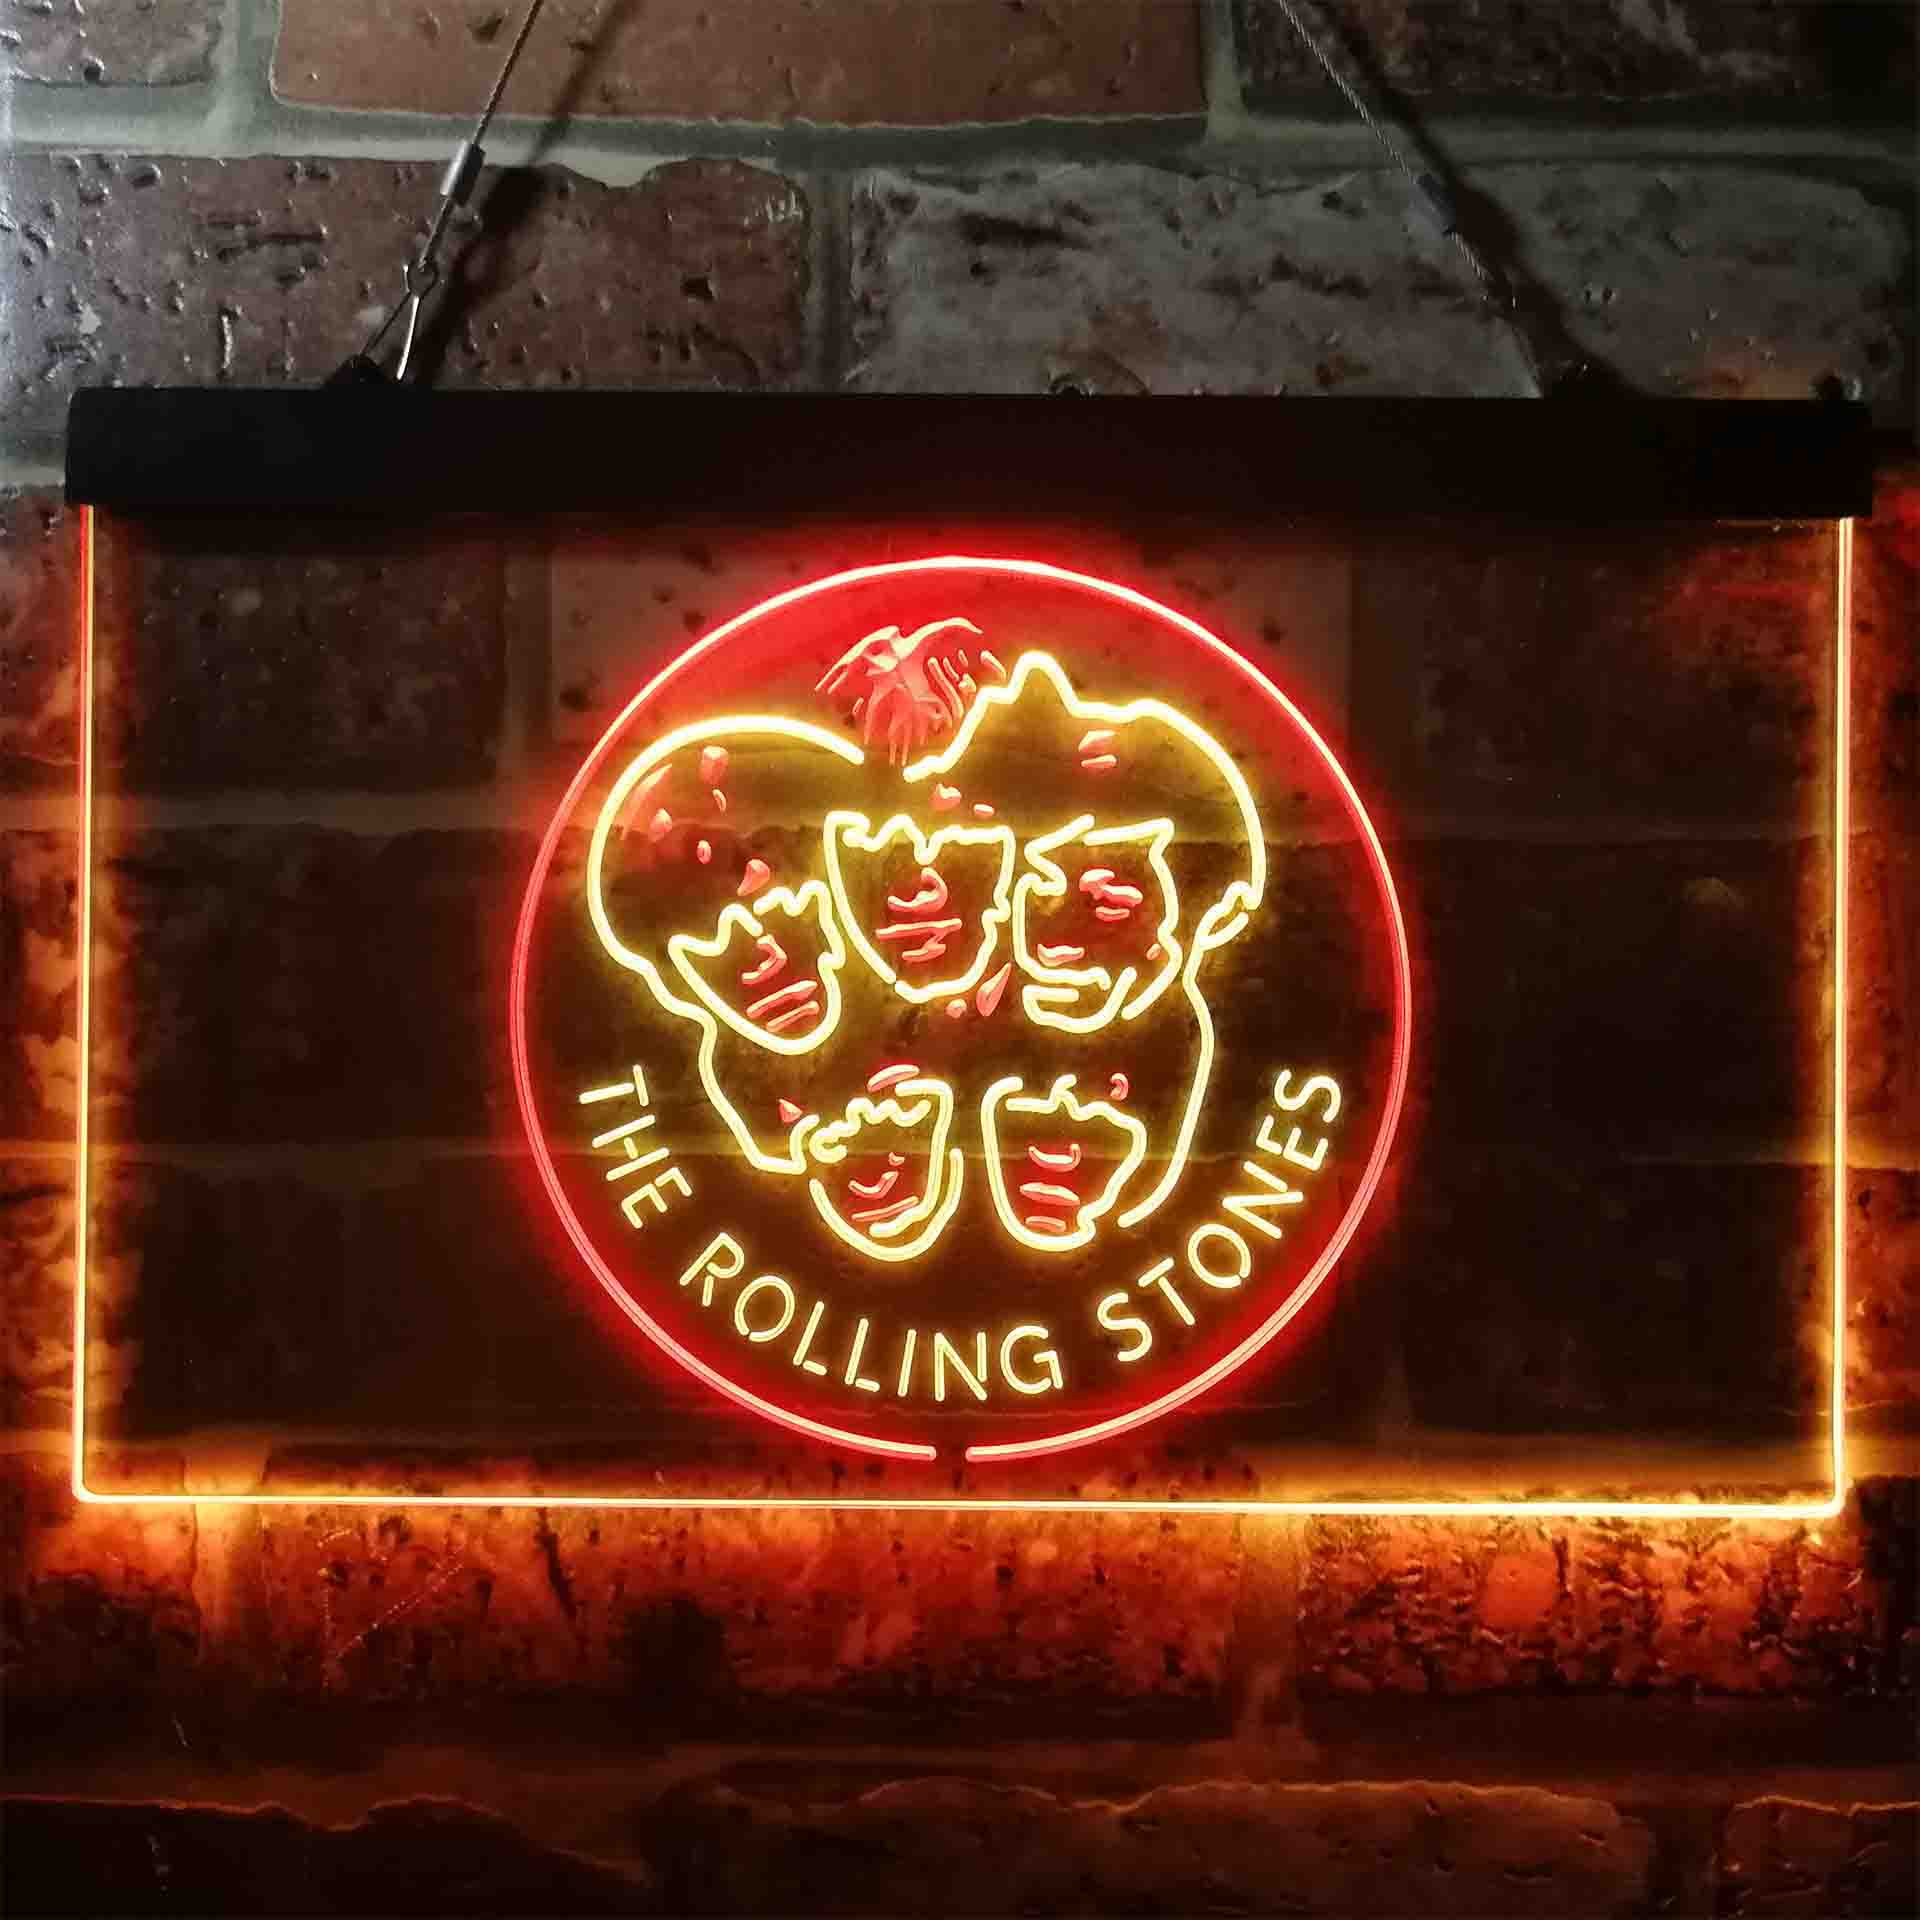 The Rolling Stones Heads Neon-Like LED Sign